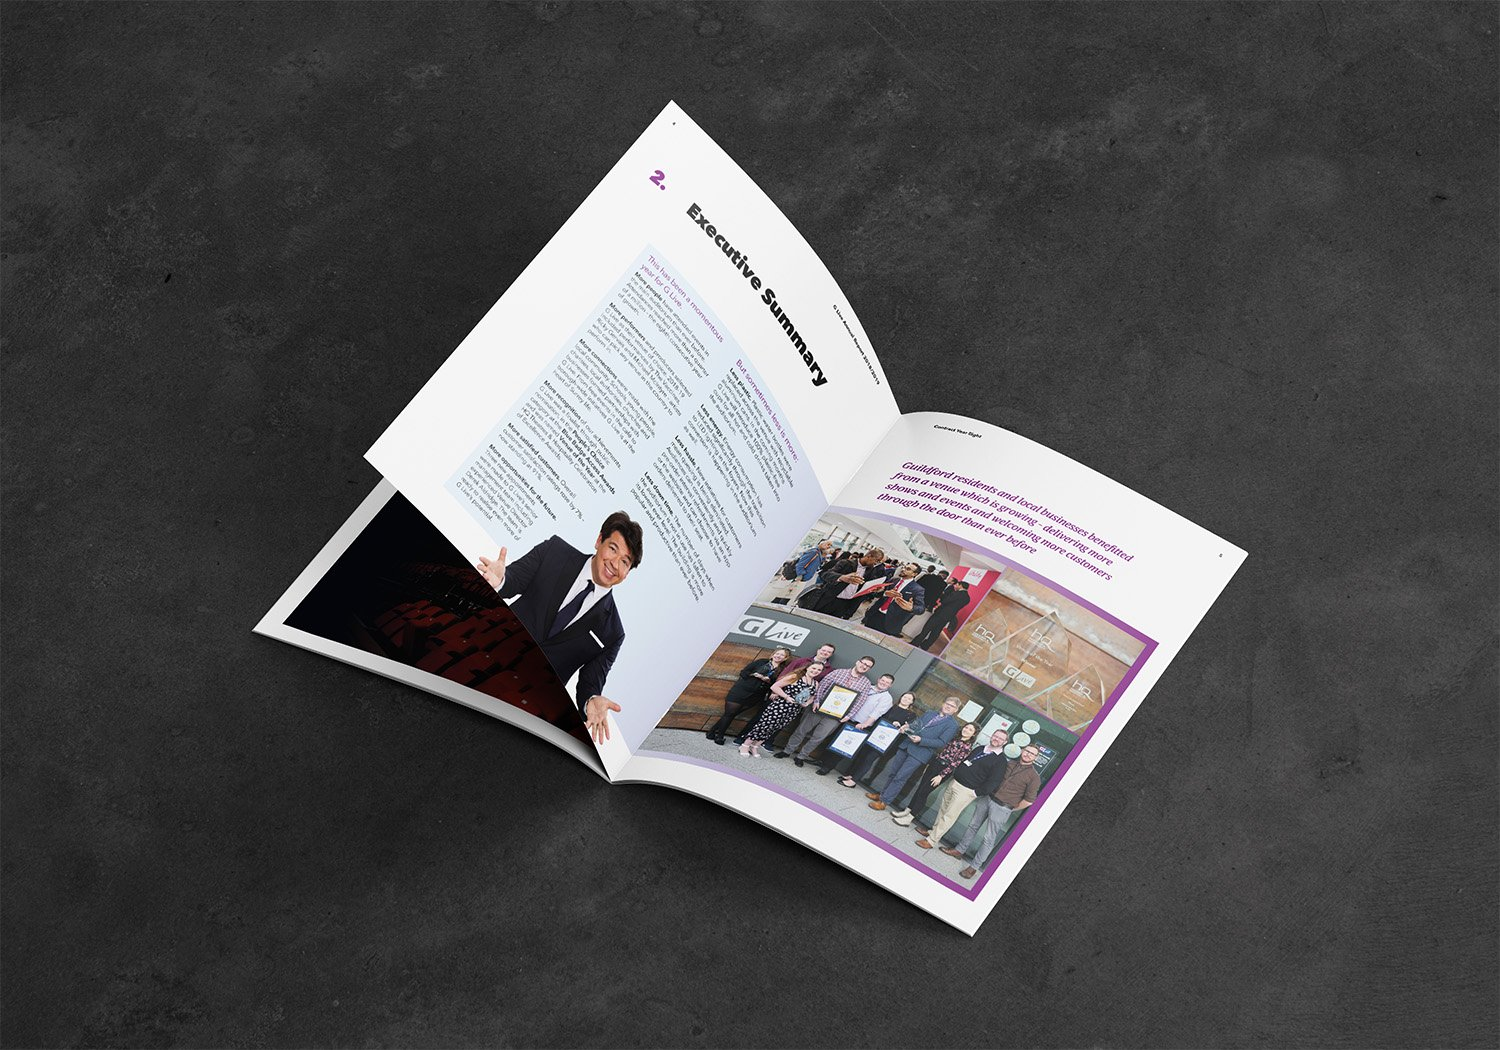 GLive Annual Report Inside View